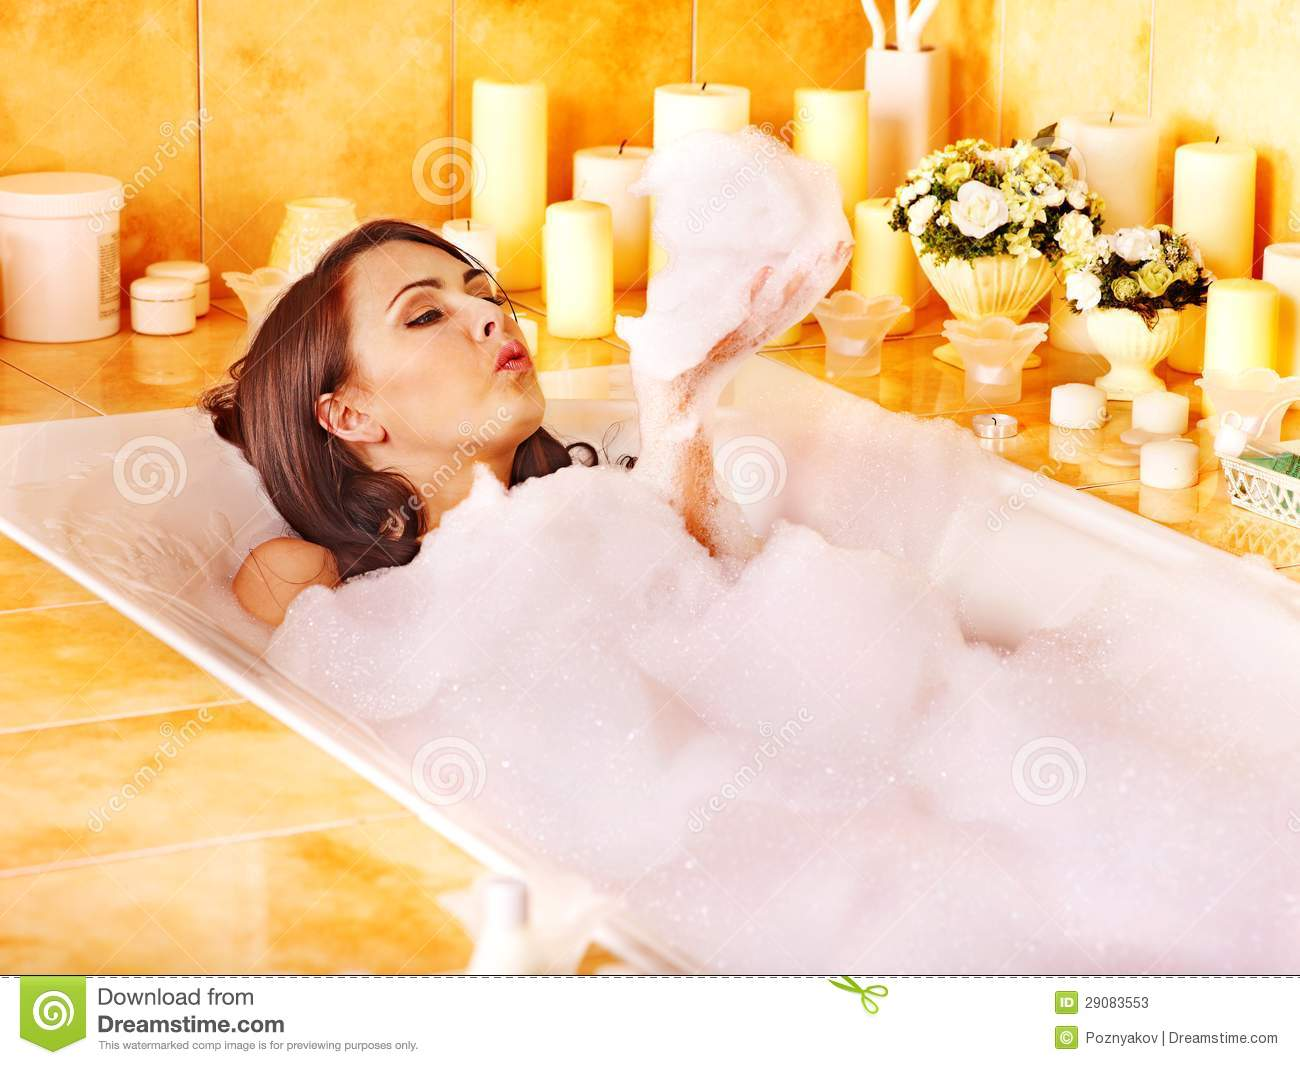 Woman Relaxing At Bubble Bath. Stock Photos - Image: 29083553